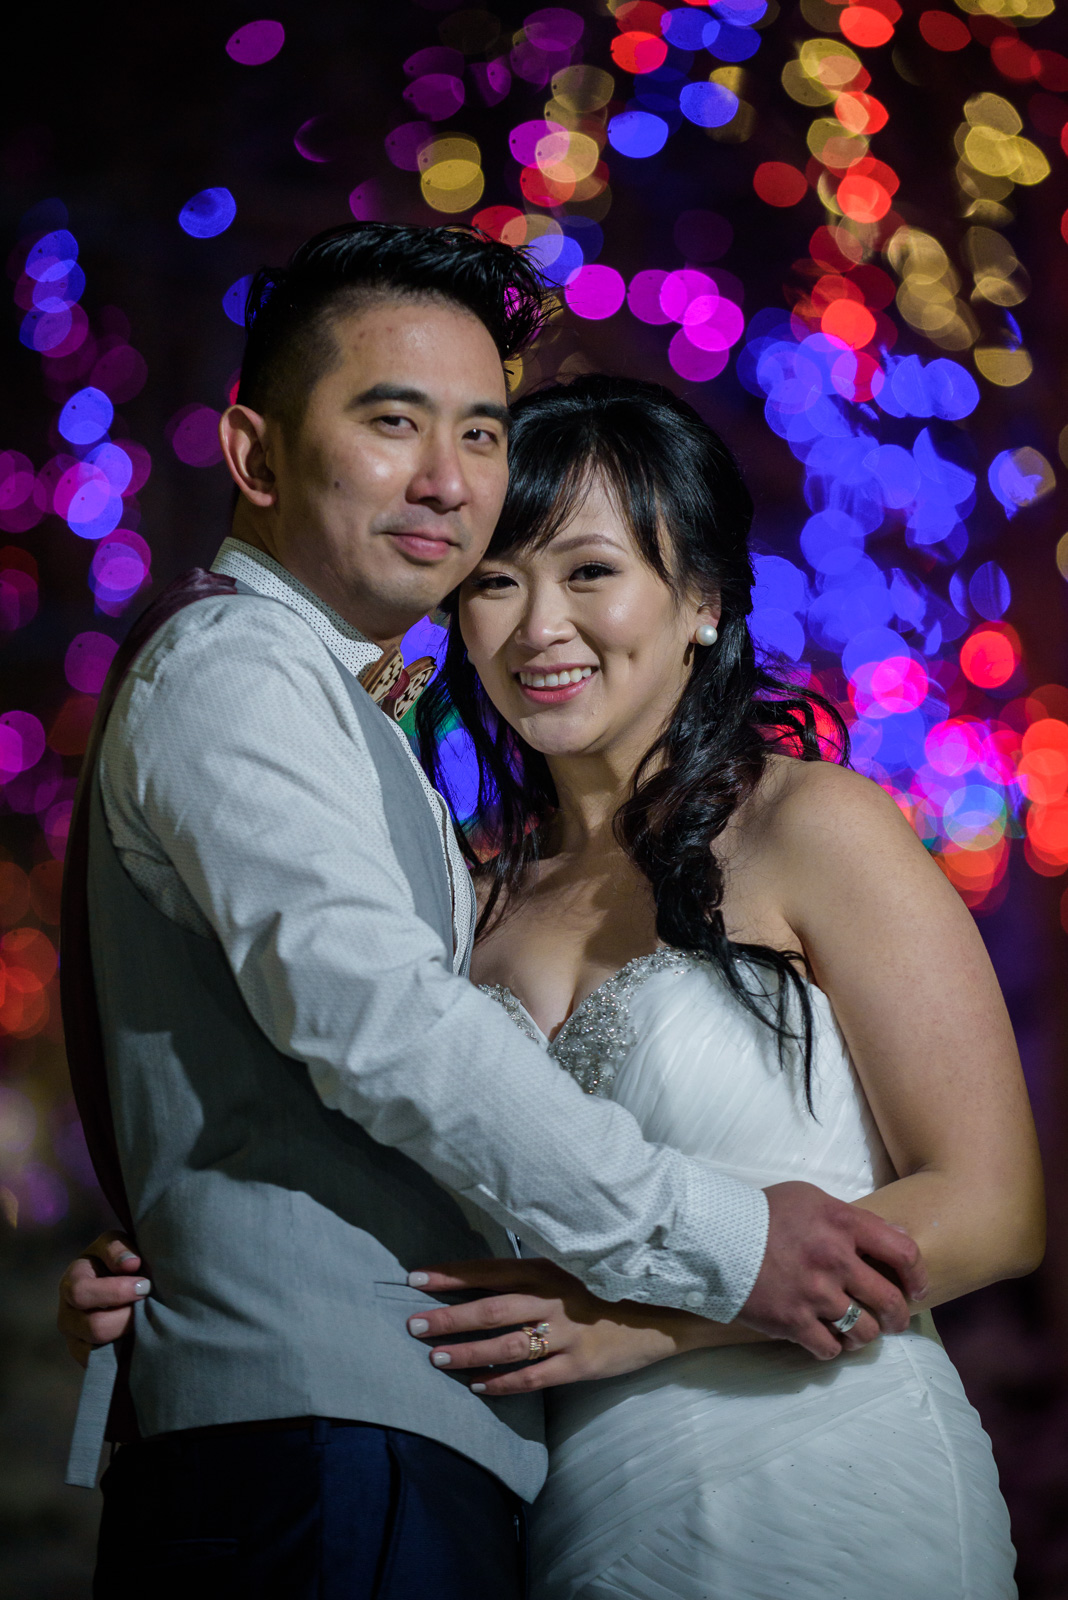 snowy wedding portrait at richmond city hall - victoria wedding photographer